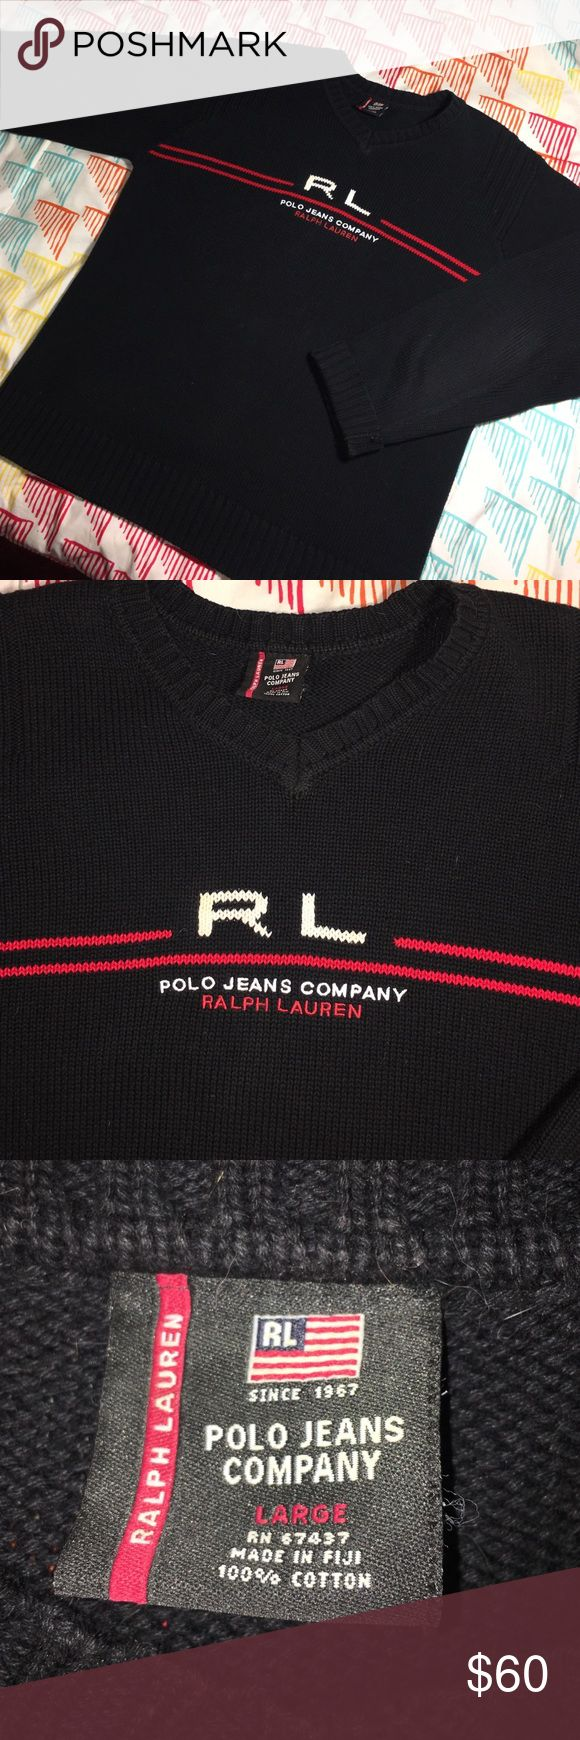 Ralph Lauren Polo Jeans Stitched RL Logo Sweater Awesome RL sweater - Men's Large - excellent condition Polo by Ralph Lauren Sweaters Crewneck